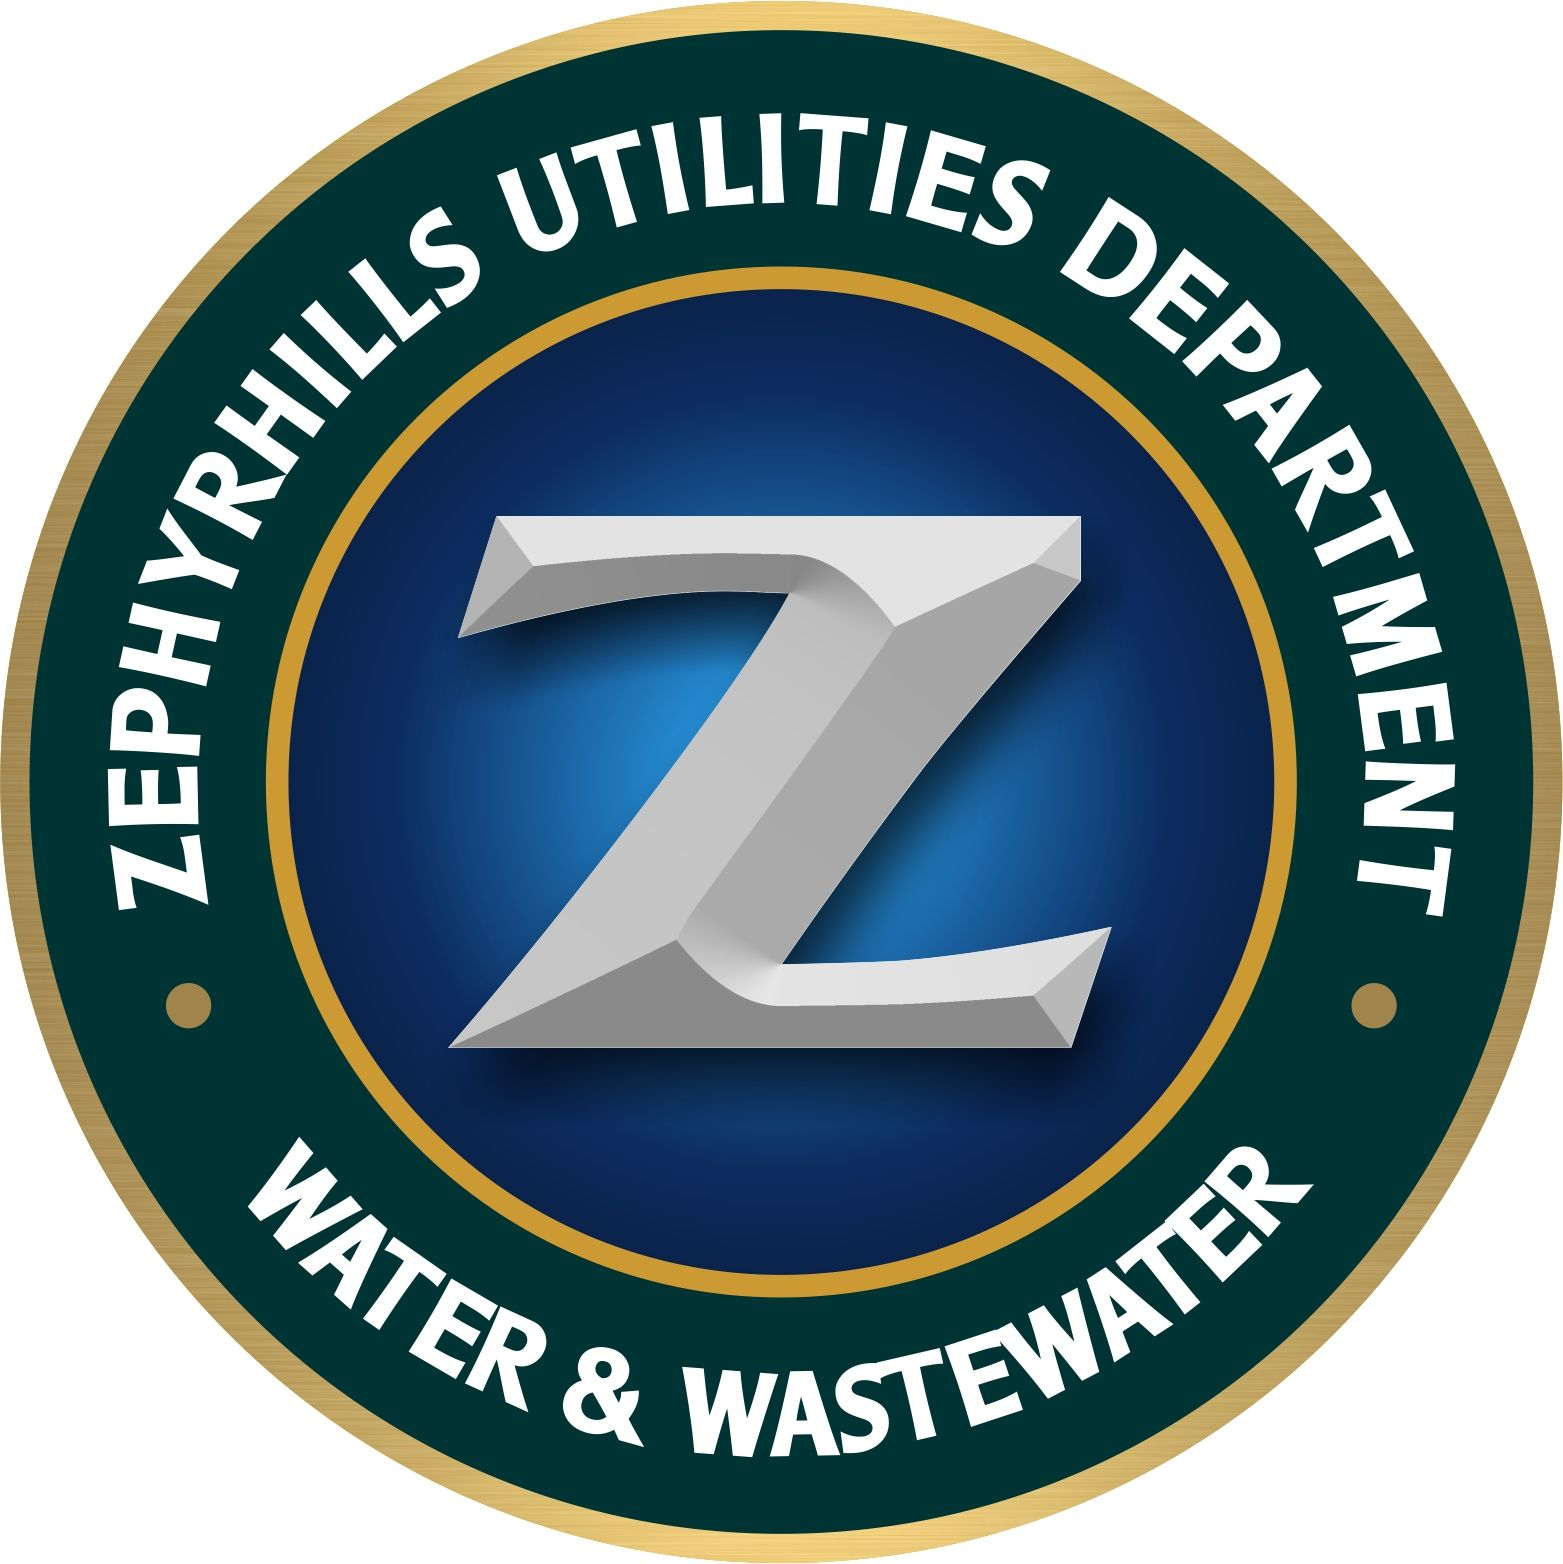 City Z-hills Water and Wastewater Logo.jpg